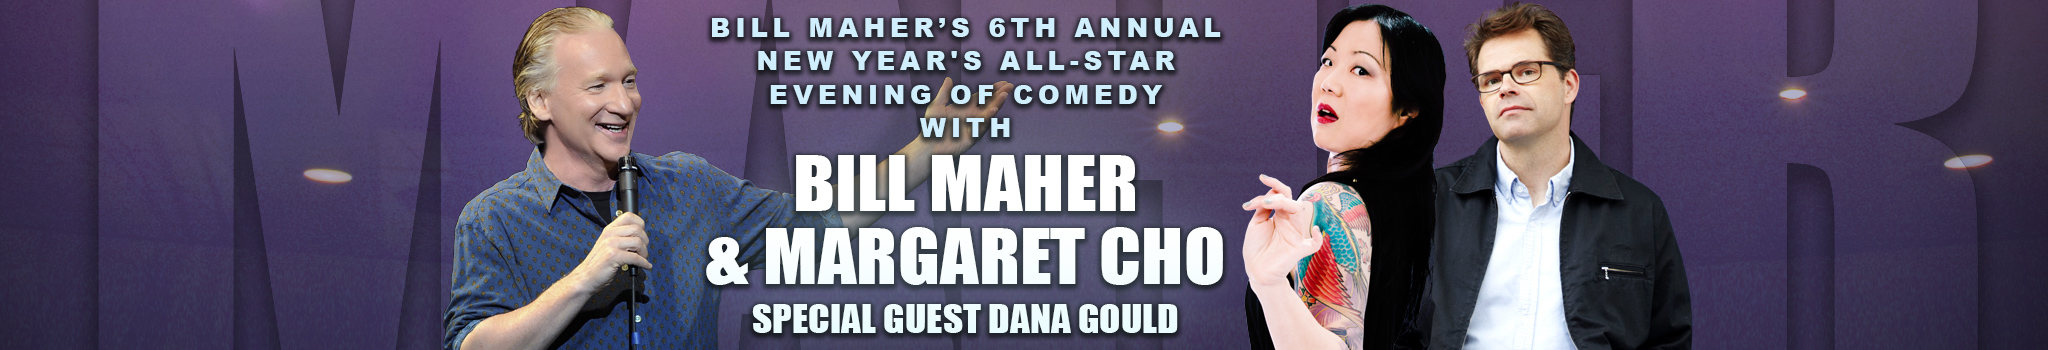 Bill Maher's 6th Annual New Year's All-Star Evening of Comedy with Bill Maher & Margaret Cho - Special Guest Dana Gould